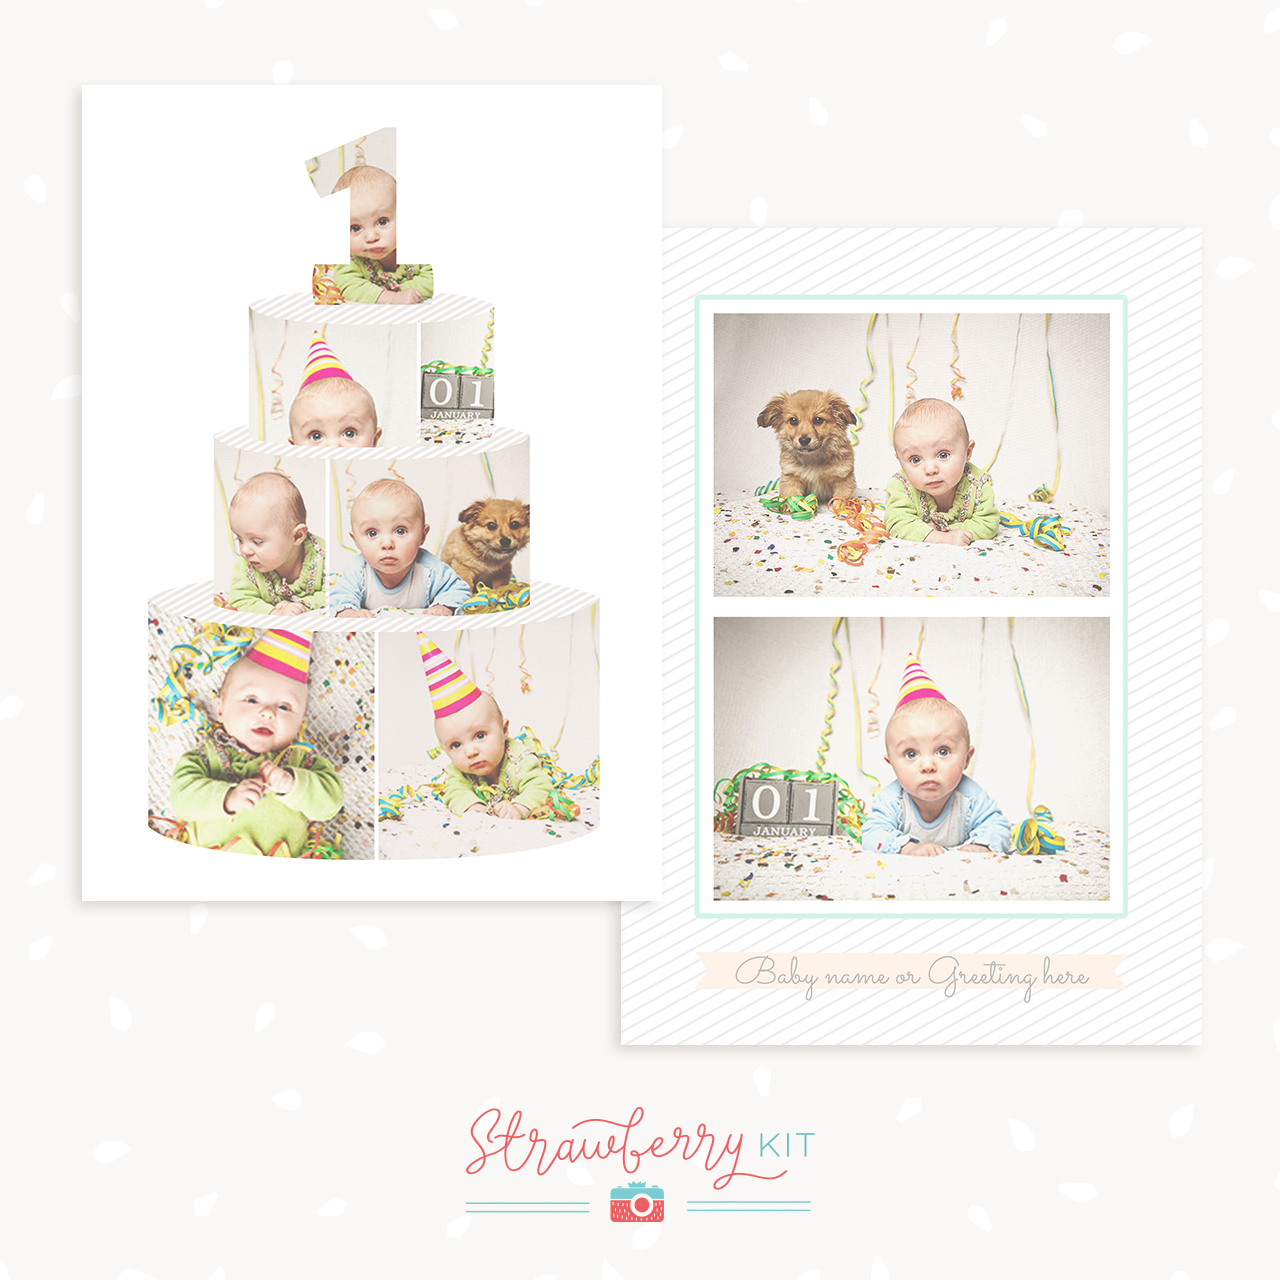 first birthday board template - first birthday card template strawberry kit